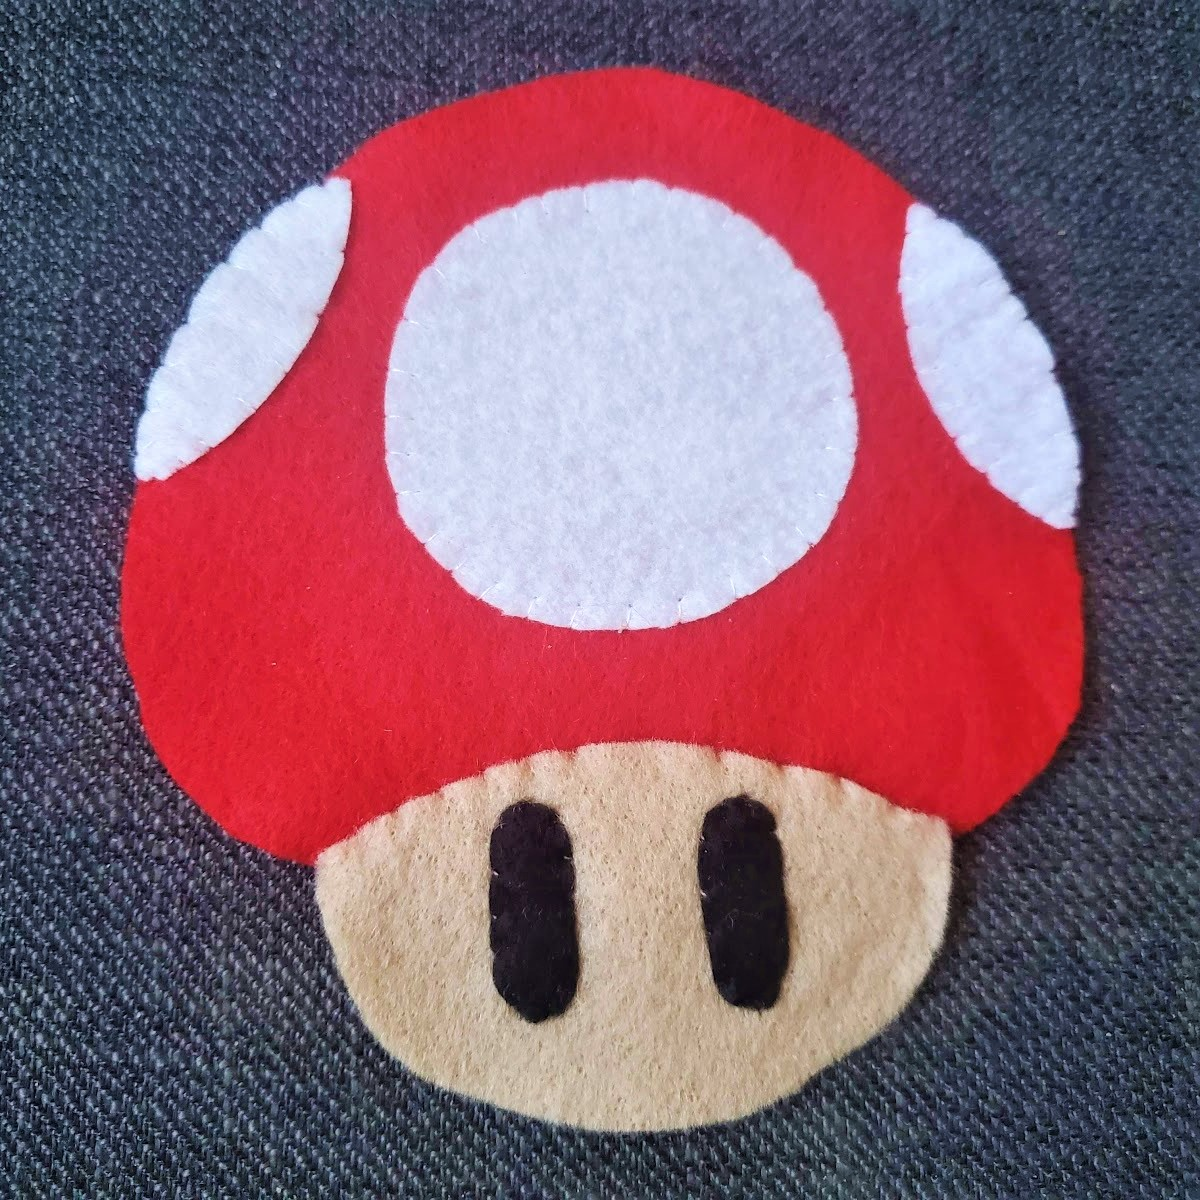 Image of front face piece sewn to front red mushroom top